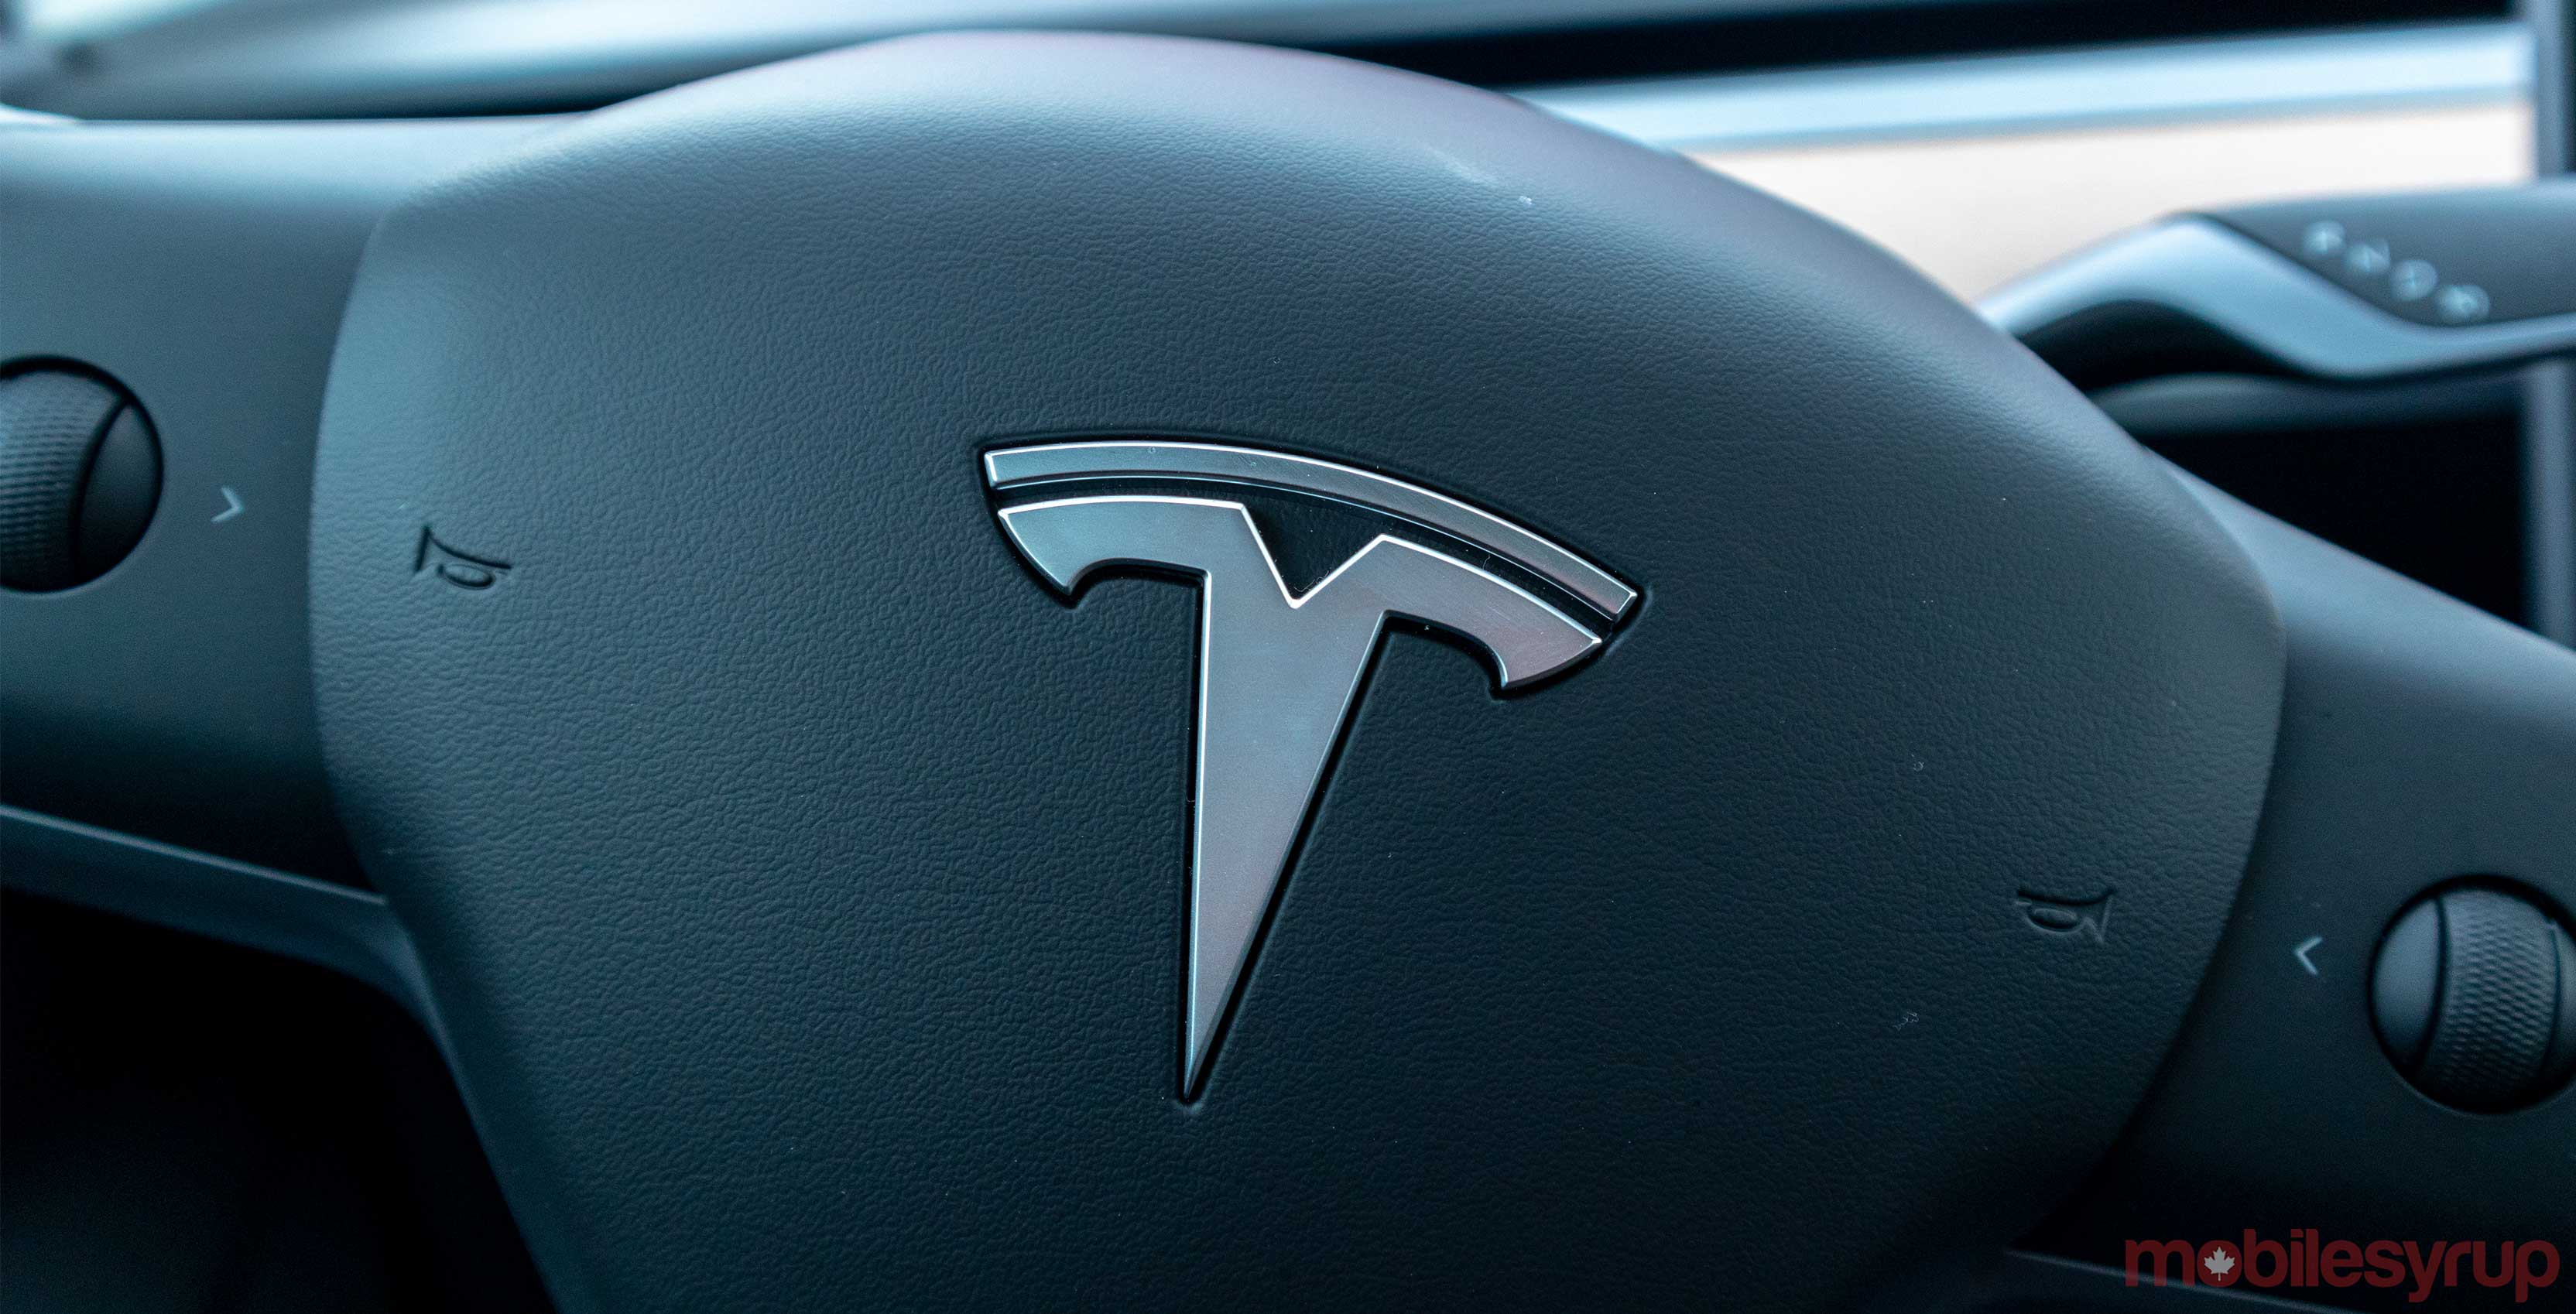 'Dog Mode' feature to keep pets from getting hot in Tesla cars